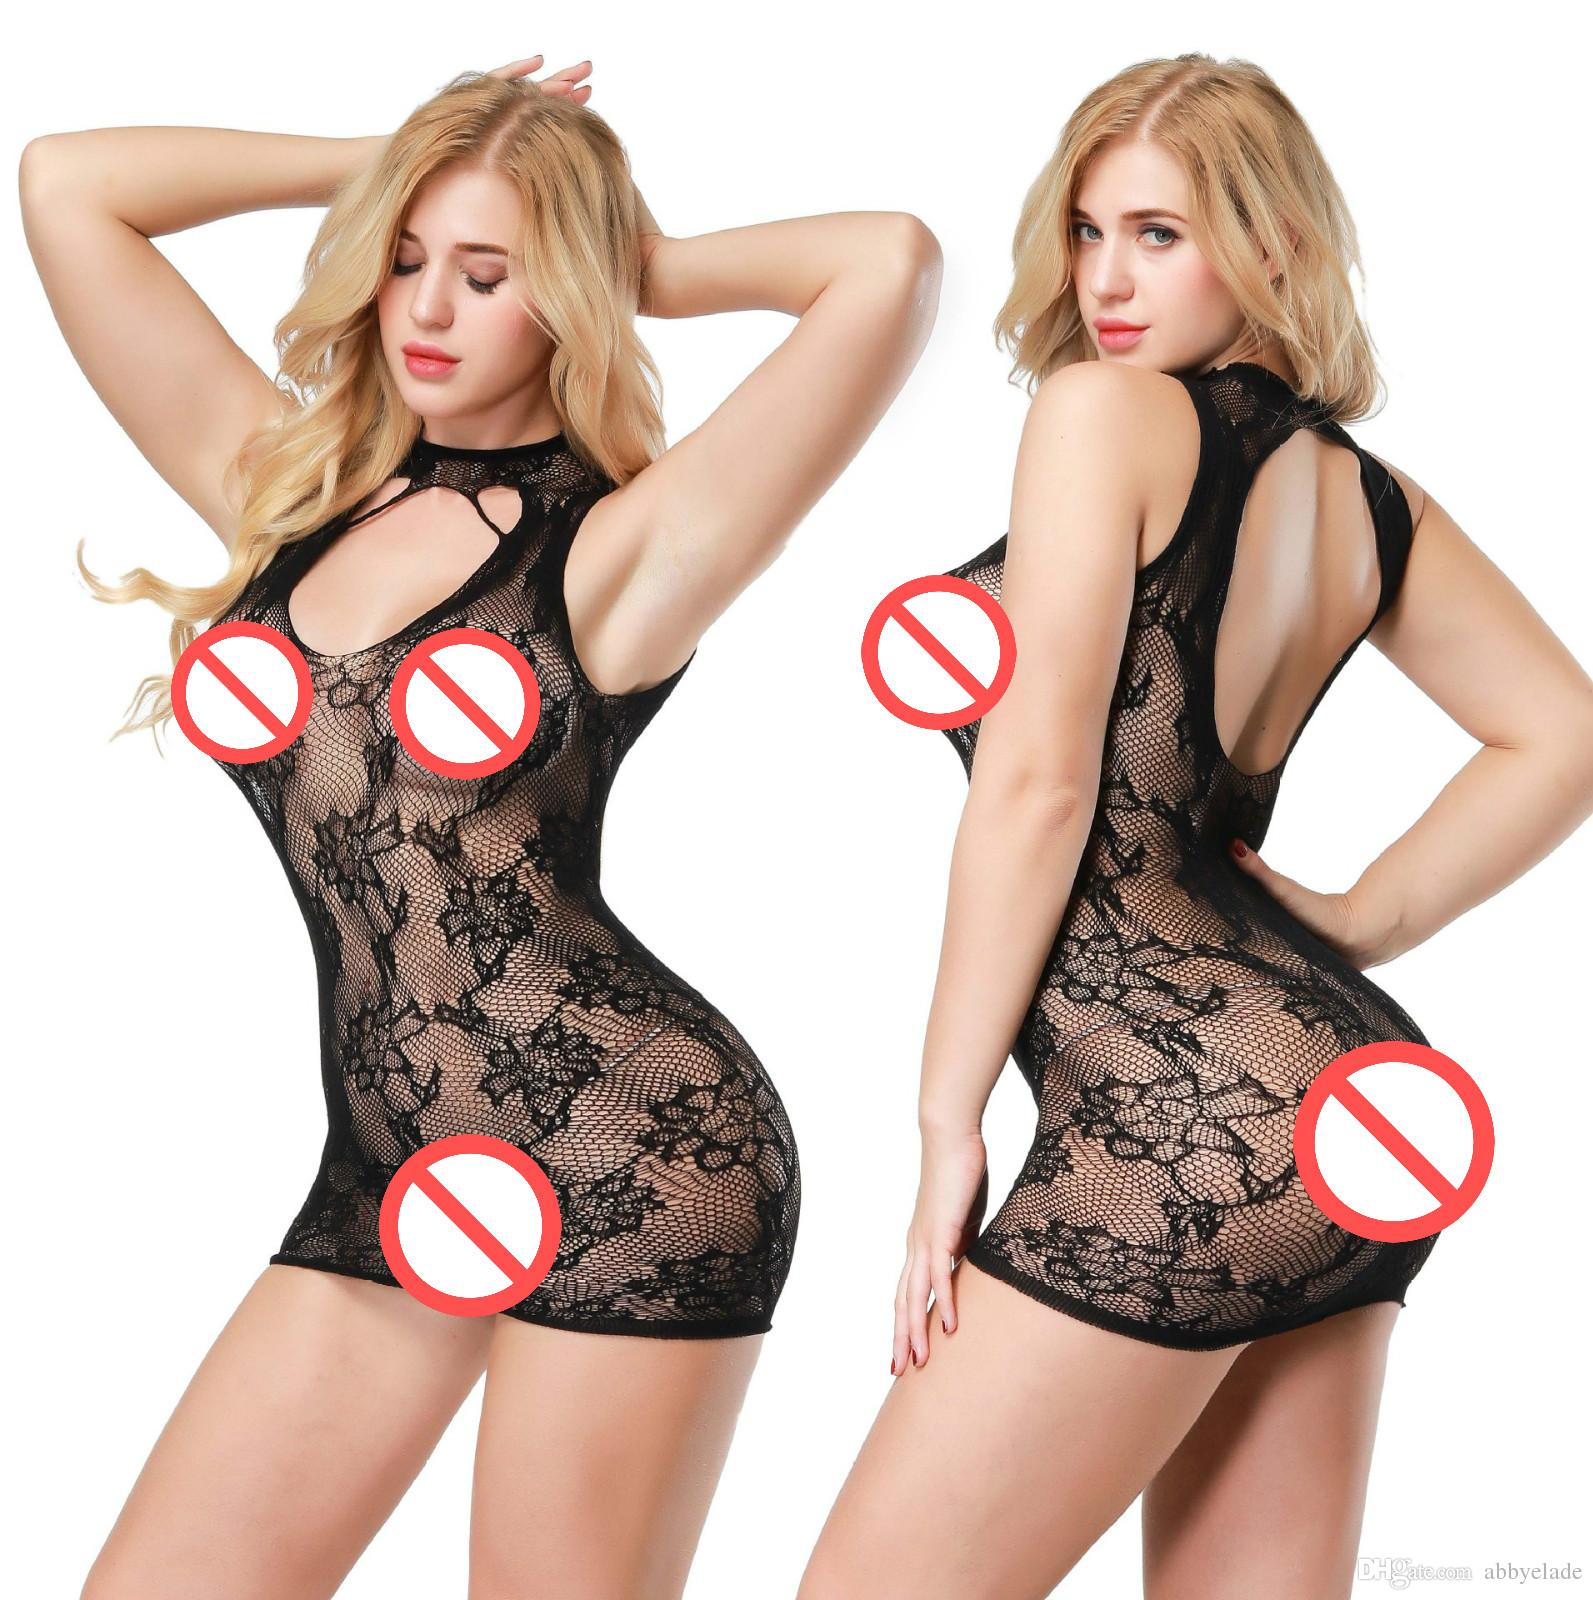 eefd42c1747 2019 Halter Fishnet Bodysuit Sexy Lingerie Fetish Chemise Pantyhose See  Through Nightwear Hot Sleepwear Floral Mesh Underwear Sexy Costume From  Abbyelade